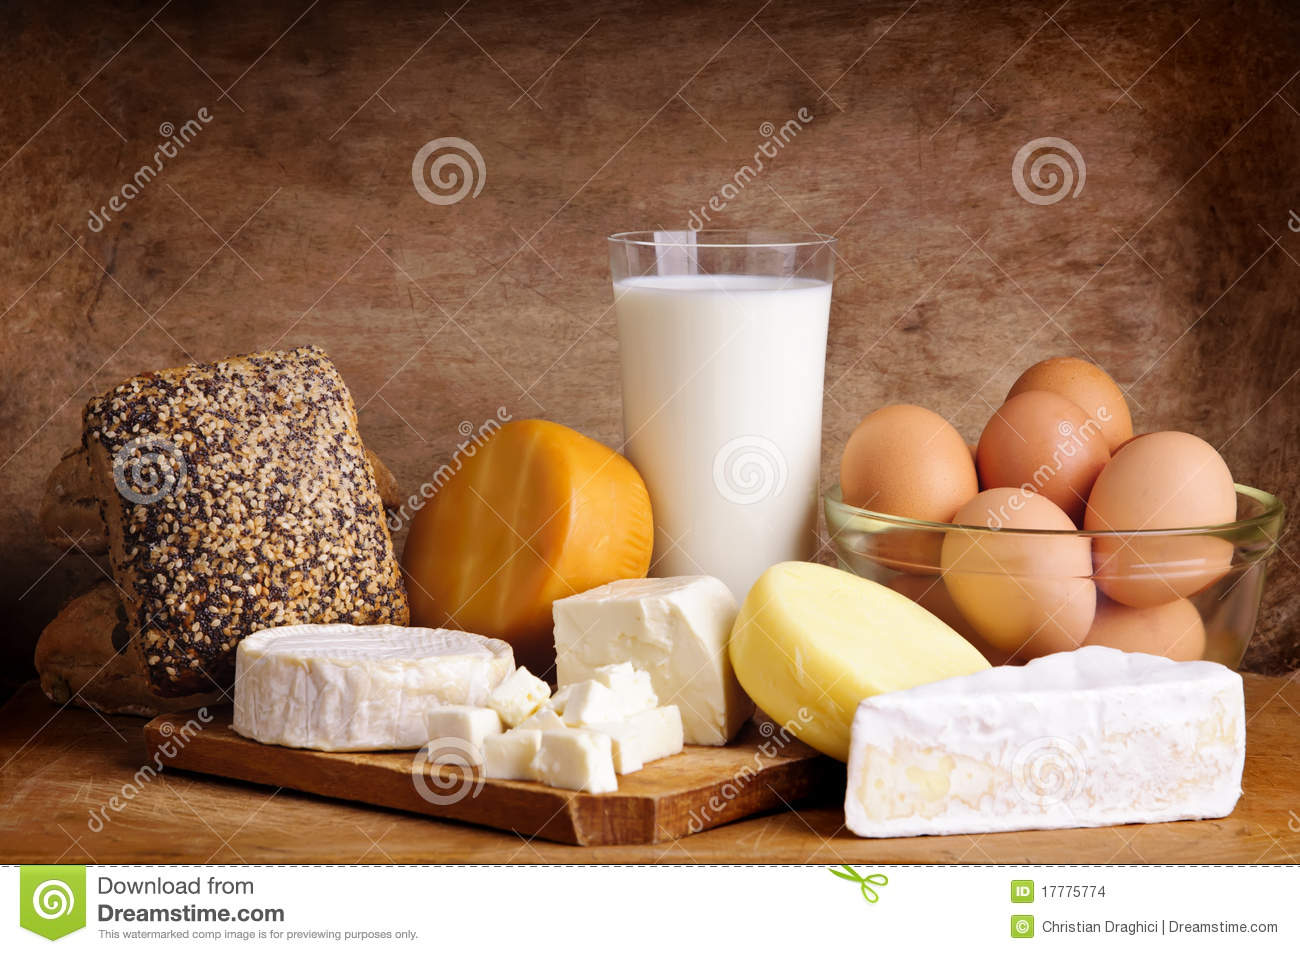 Cheese, bread, milk and eggs